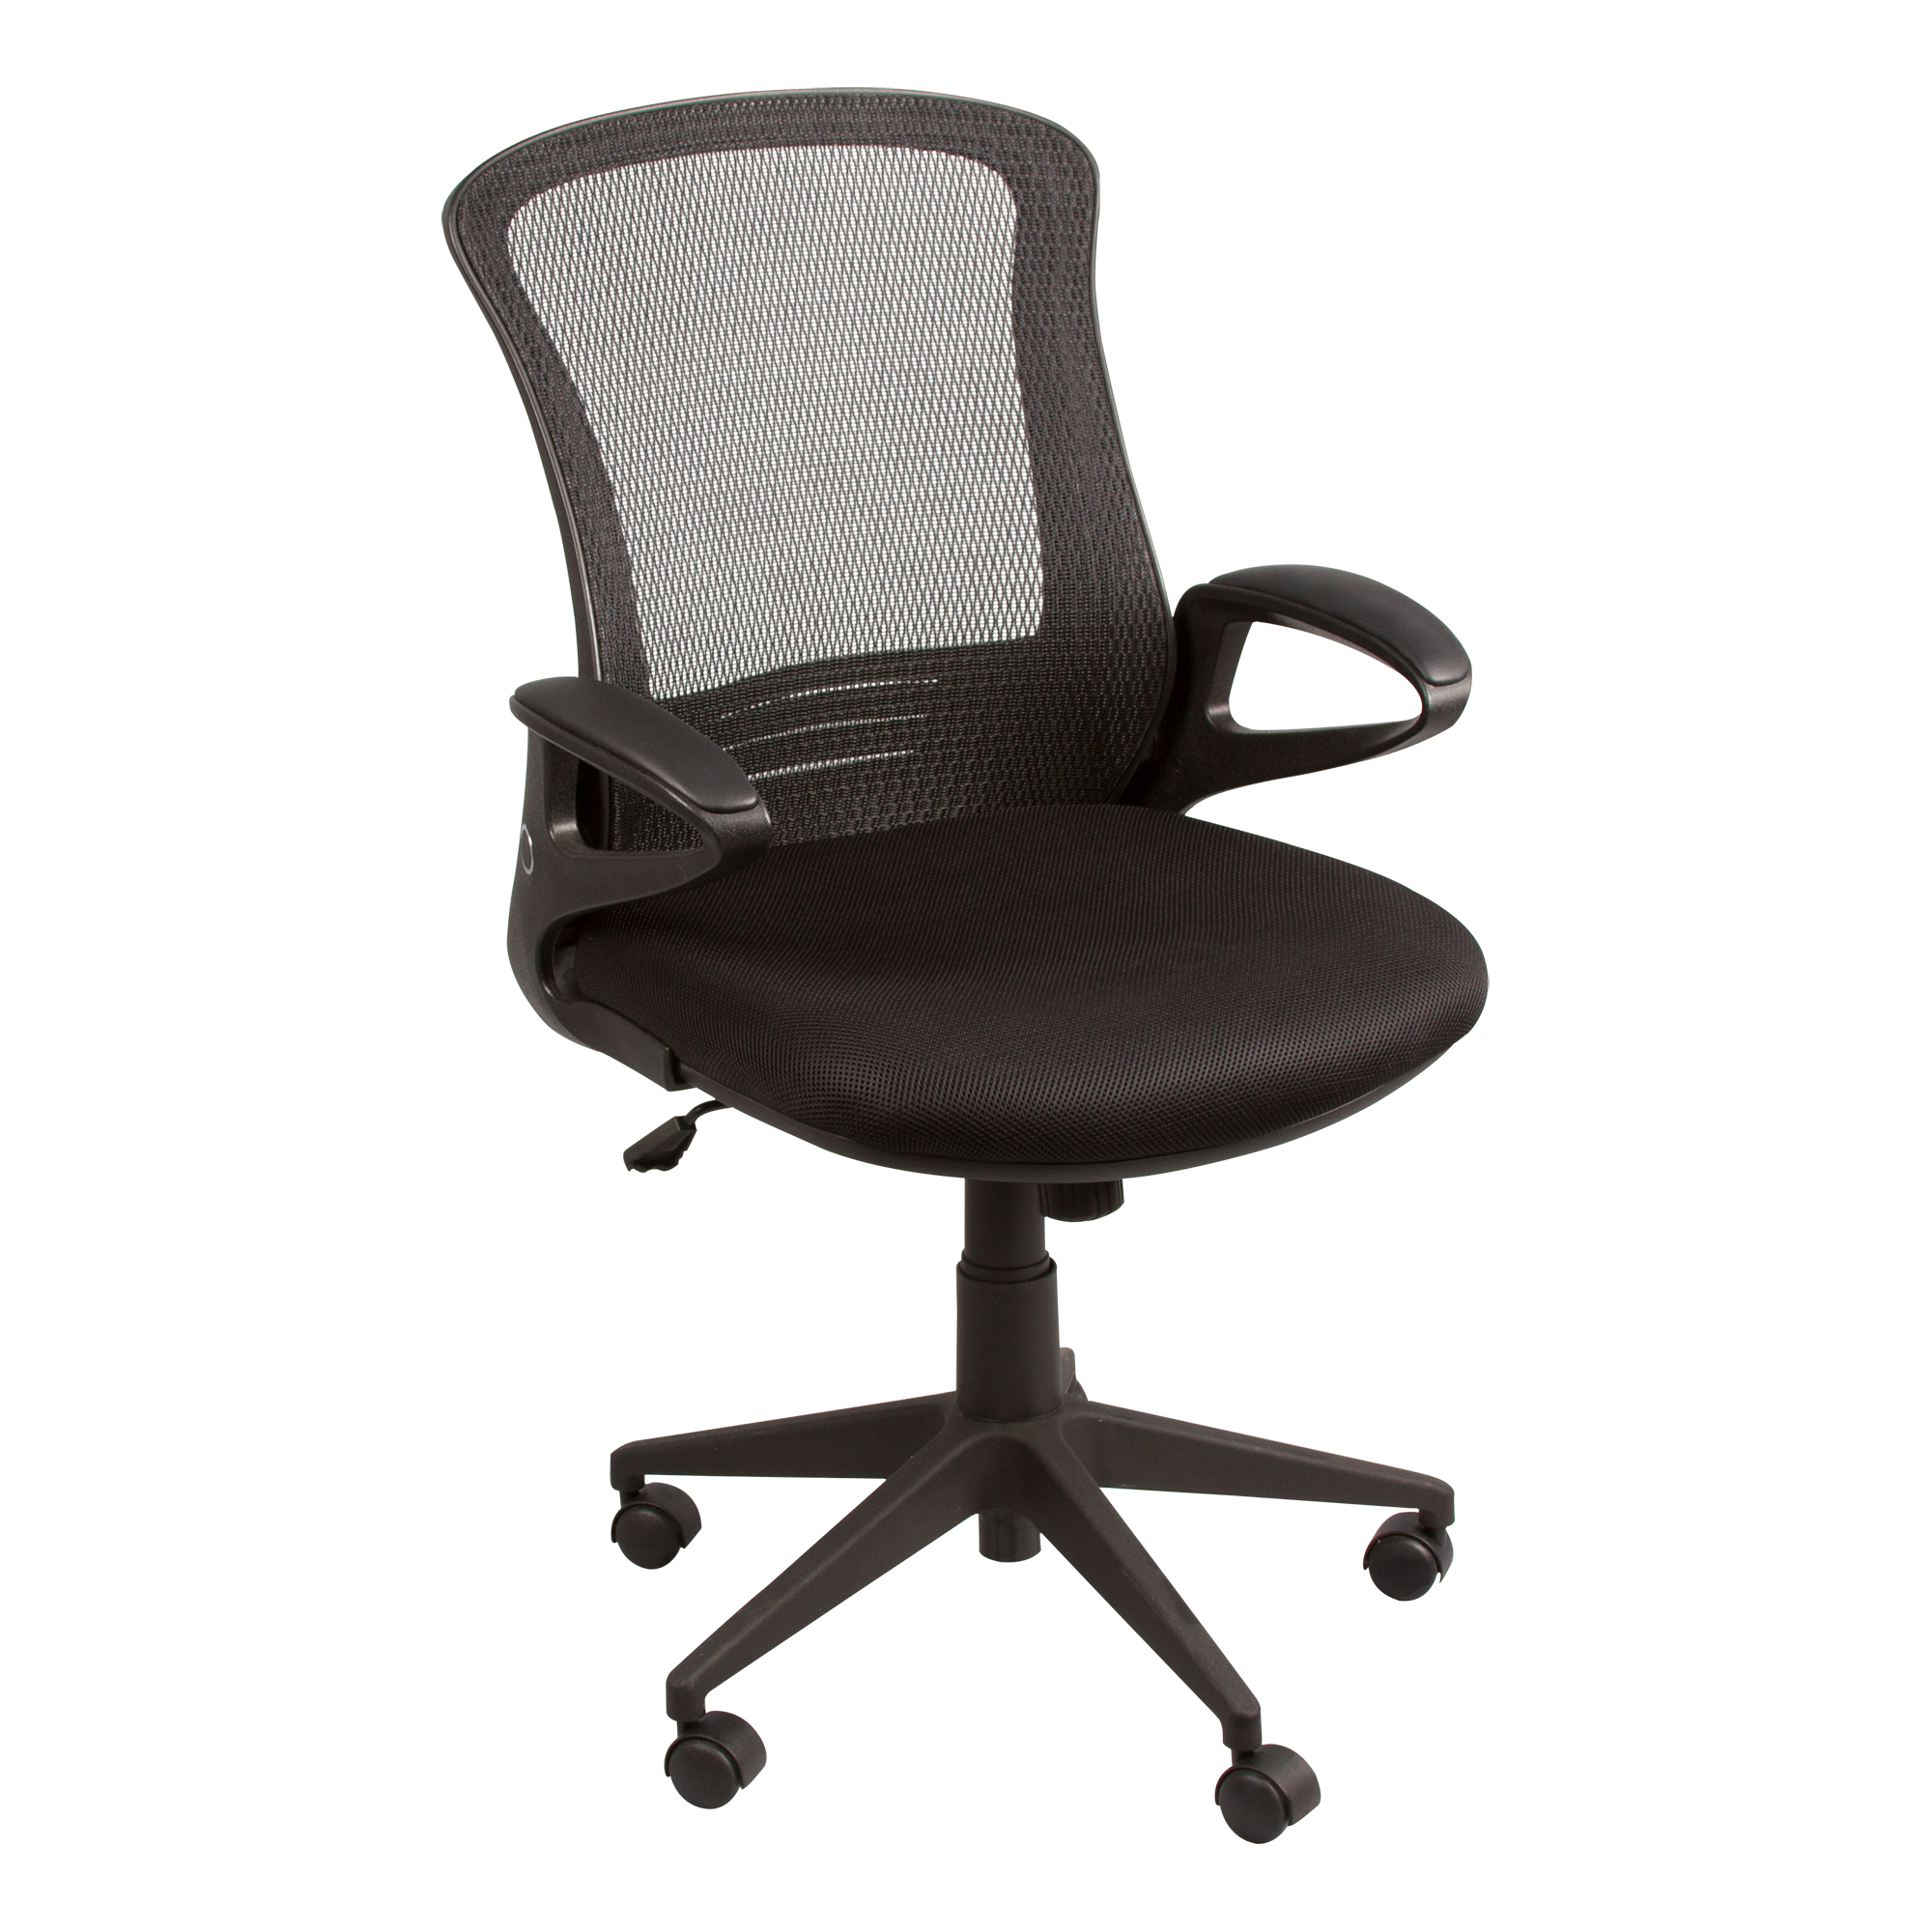 Mesh Back Office Chair W/ Foldable Seat Back